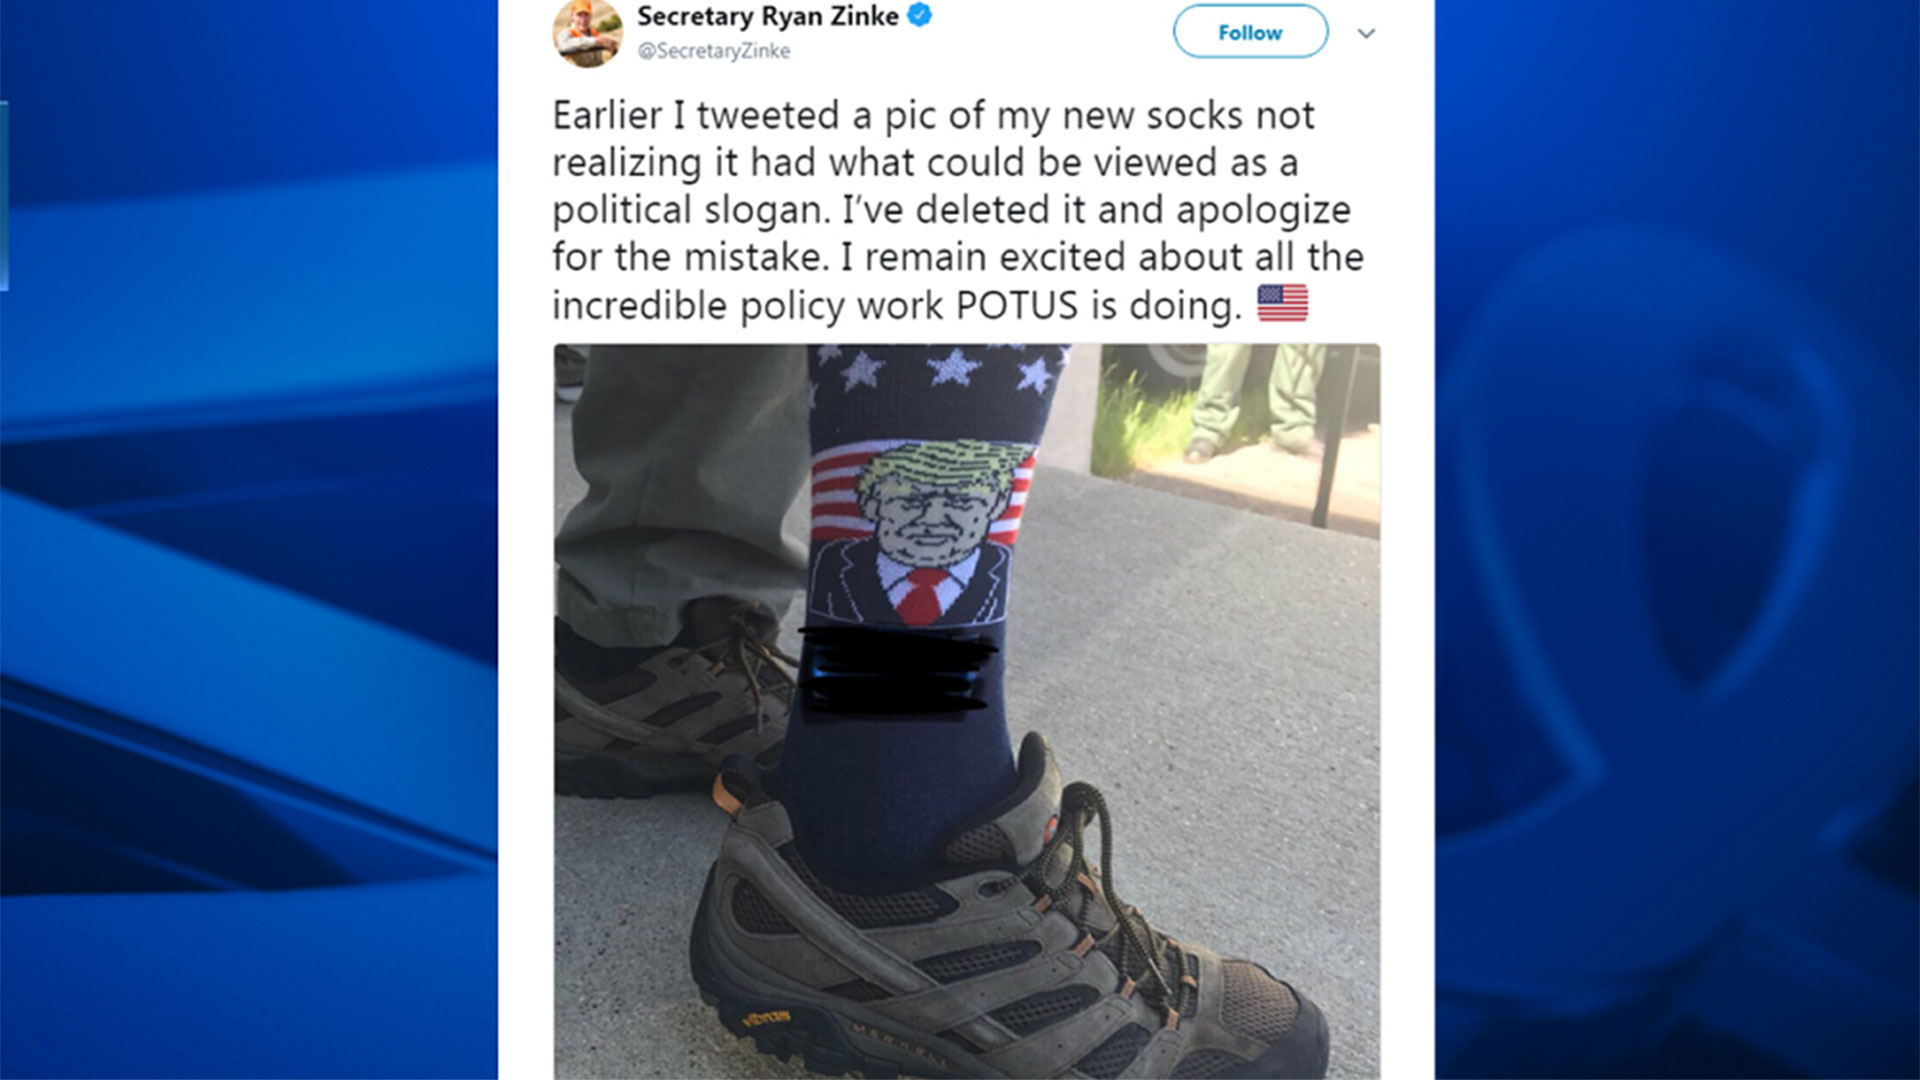 Zinke socks Tweet at Mount Rushmore